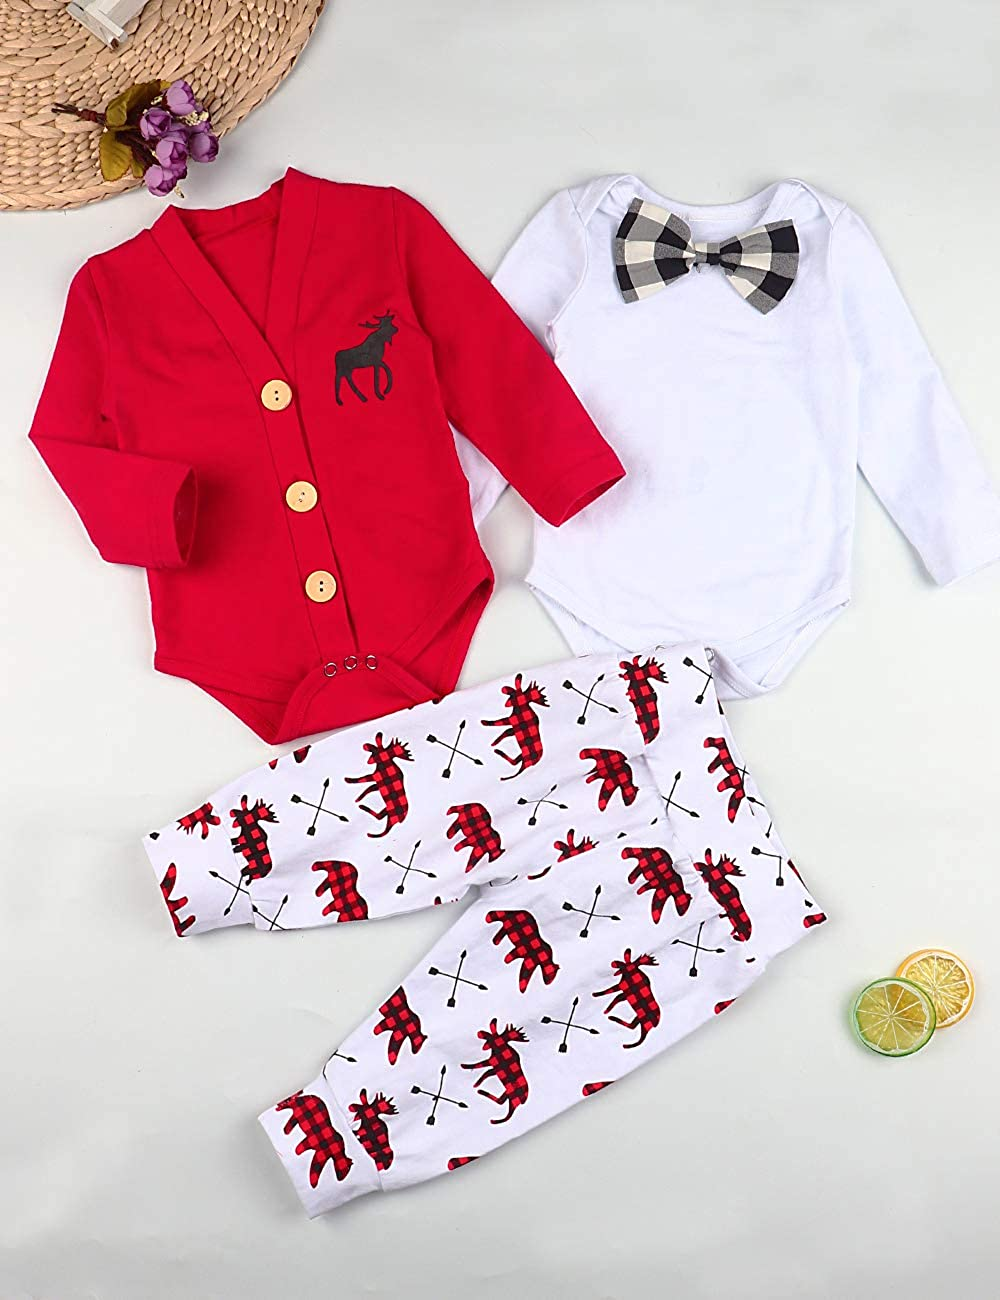 3Pcs Baby Boy Christmas Outfits Baby Gentleman Suit Long-Sleeve Cardigan+Bow Tie Romper Bodysuit+Pants Newborn Clothing Set